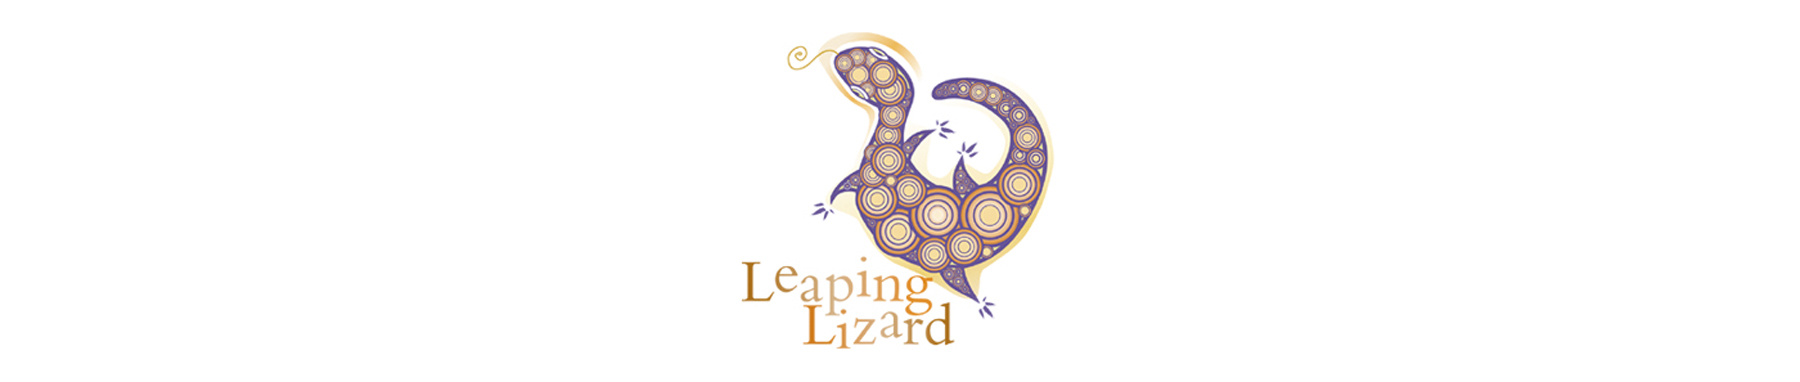 leaping lizard wine label banner on white background